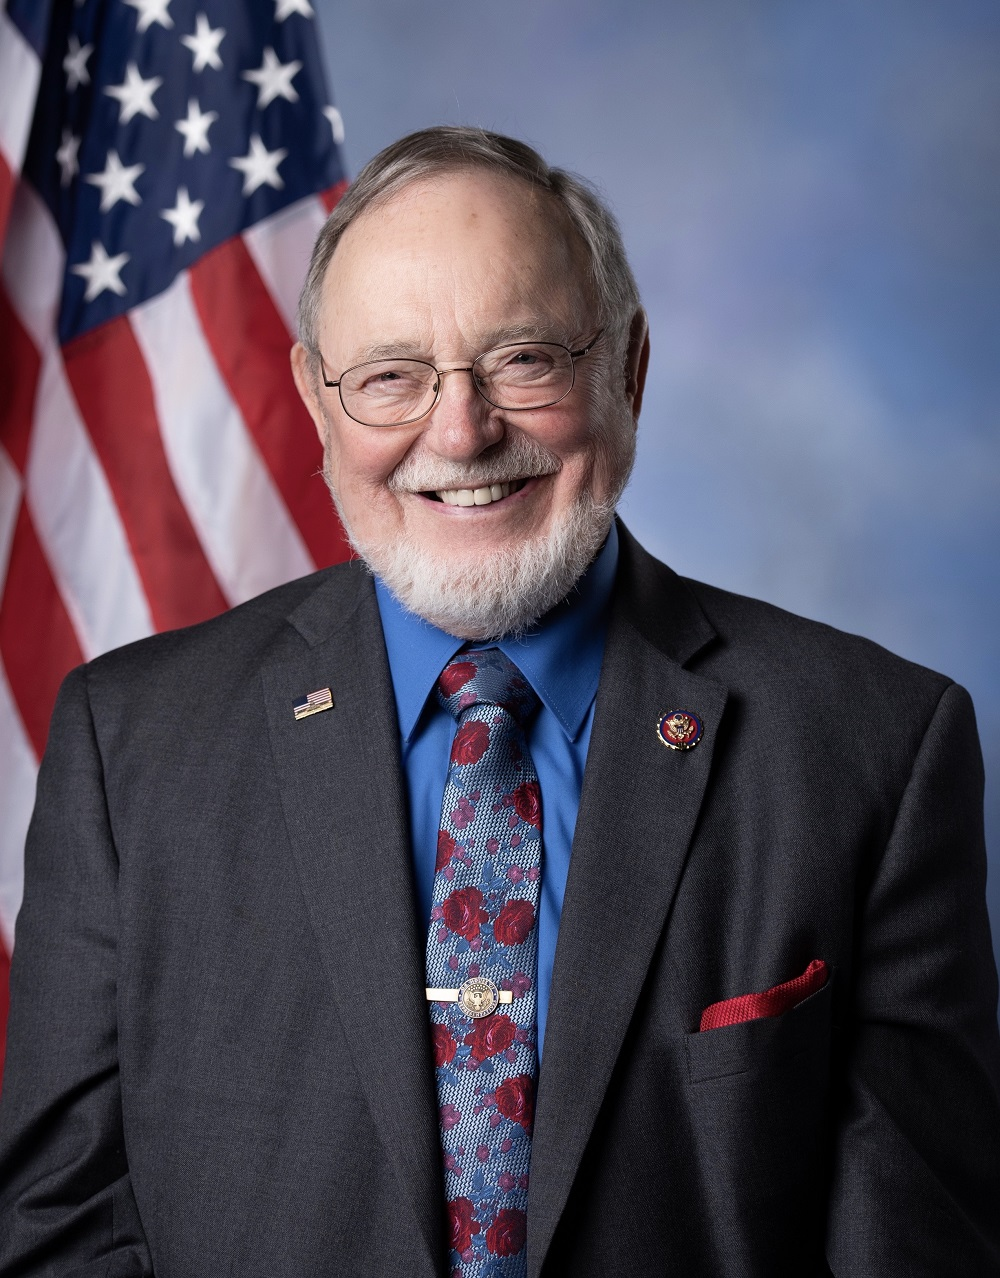 Discussing Legislative Effectiveness with Representative Don Young